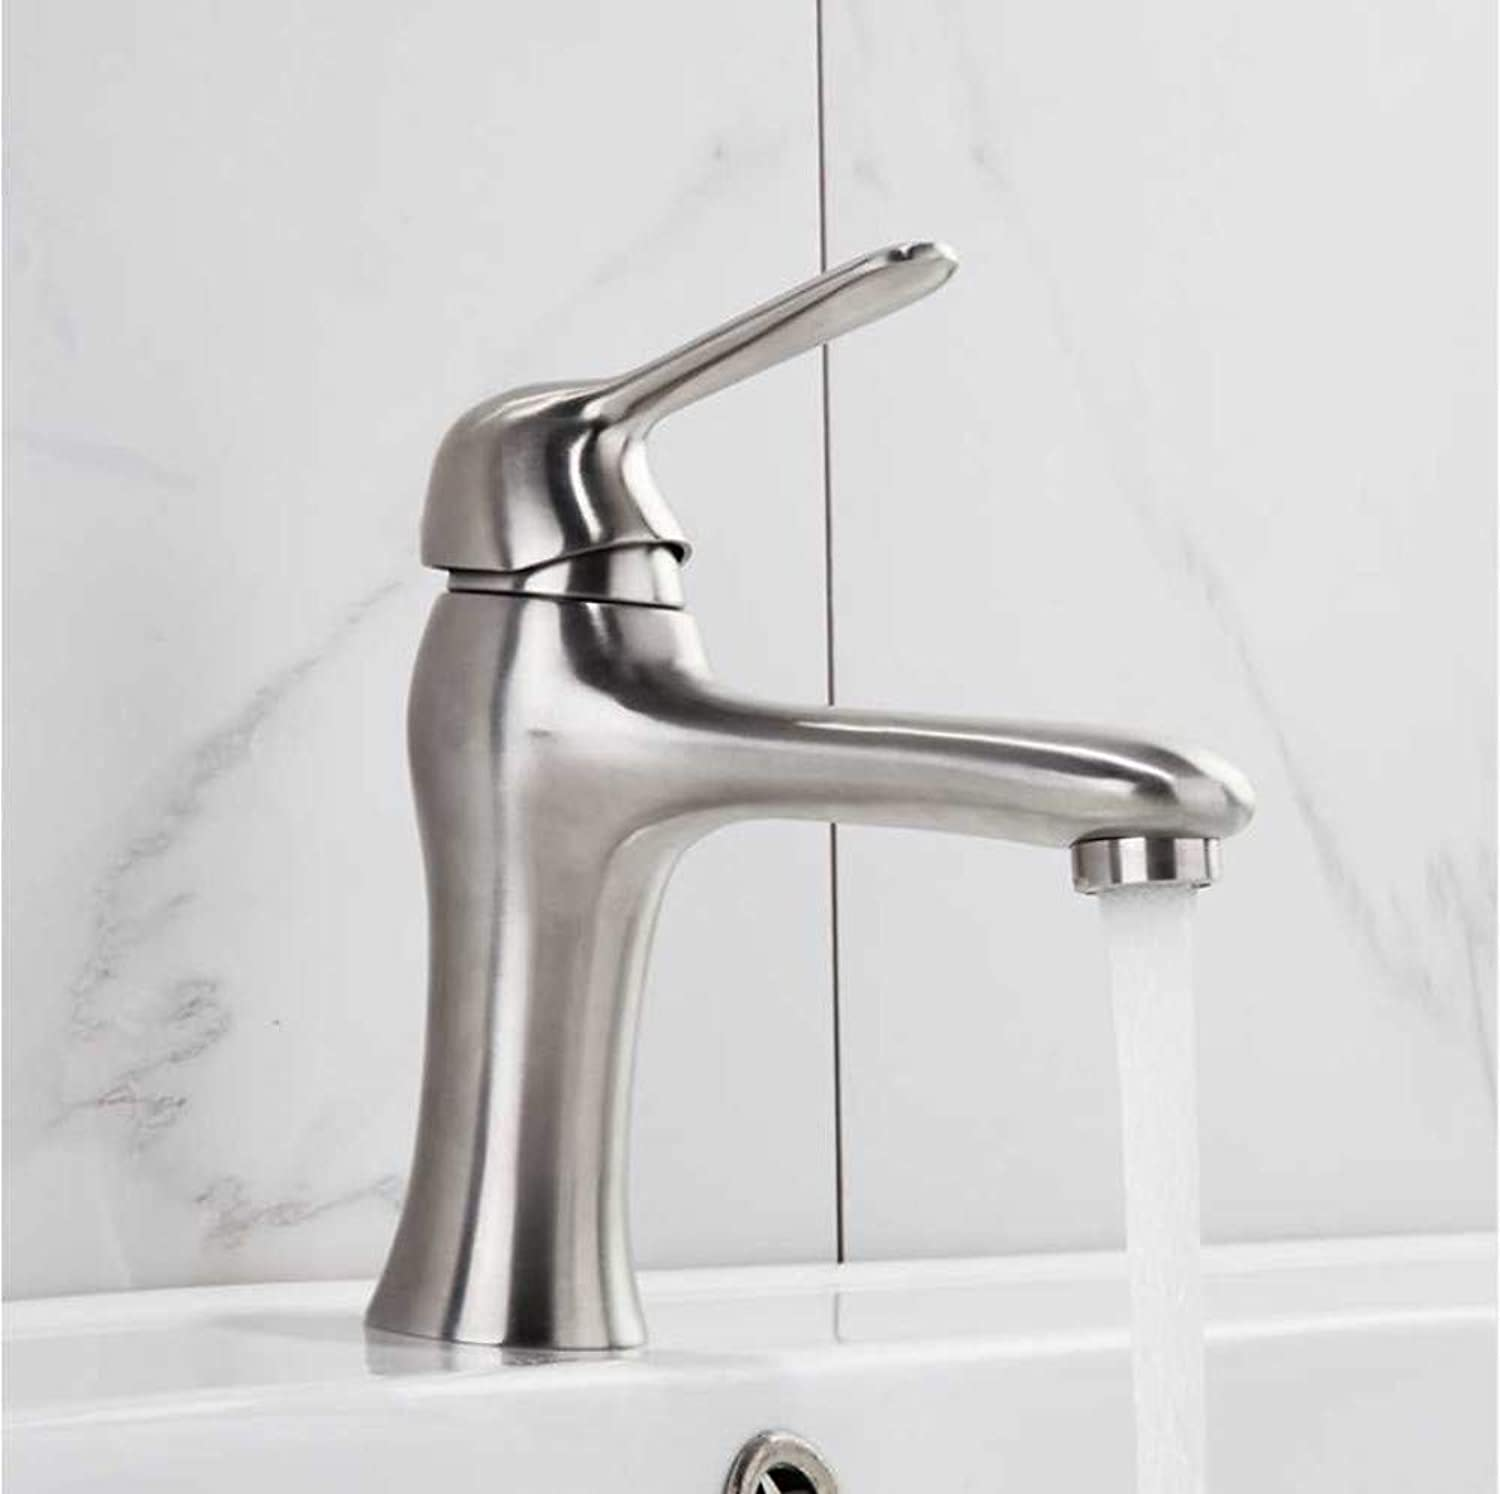 Jukunlun Basin Faucets Stainless Steel Water Taps Basin Sink Faucet Taps Mixers Bathroom Water Faucet Fitting